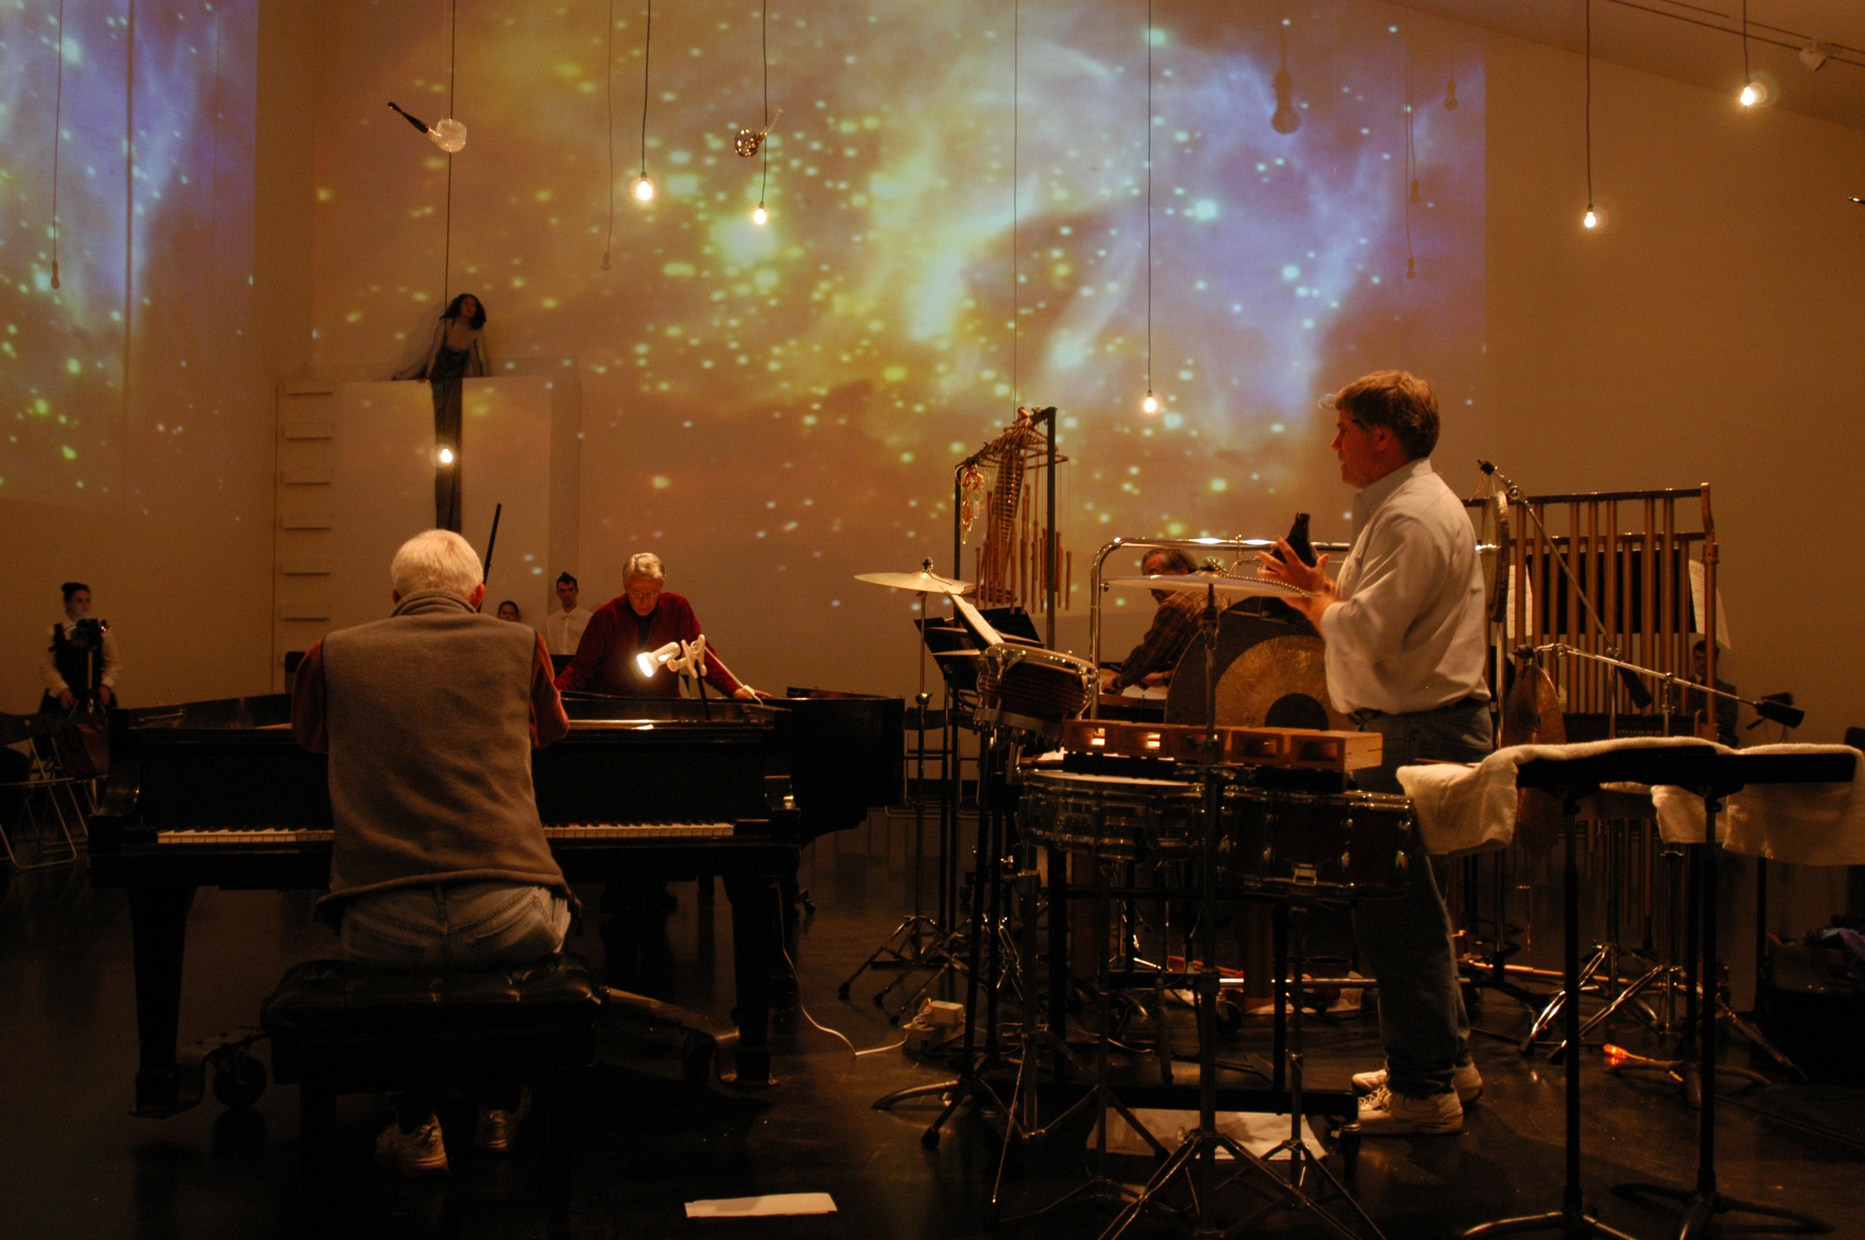 A group of musicians perform in a large, open space with images of stars and galaxies projected on the walls around them.